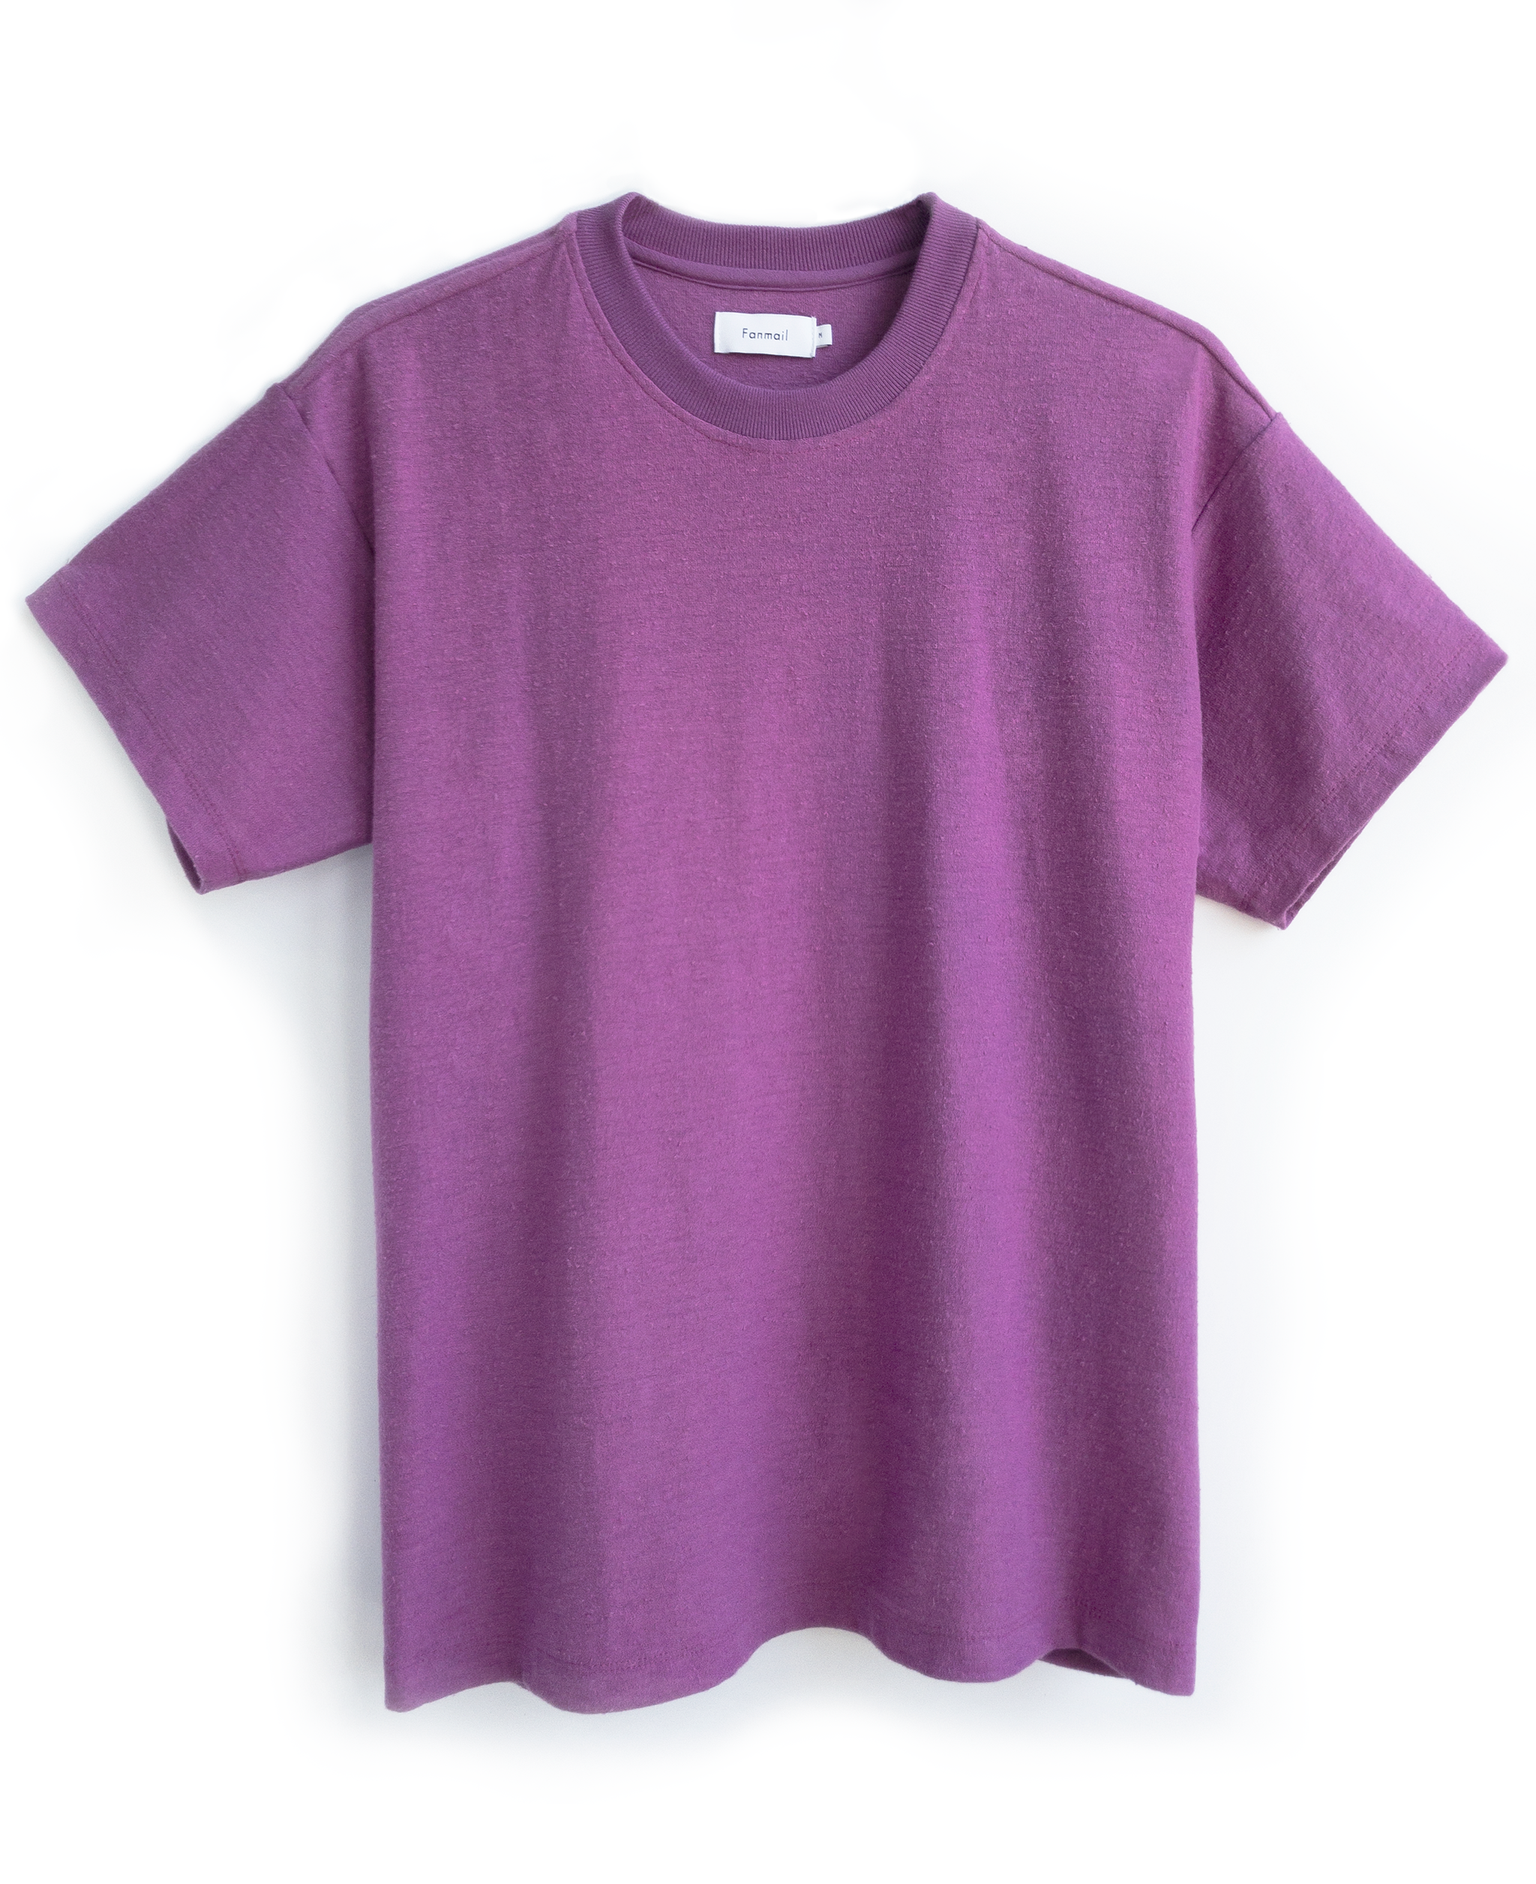 boxy tee / fuchsia - sold out